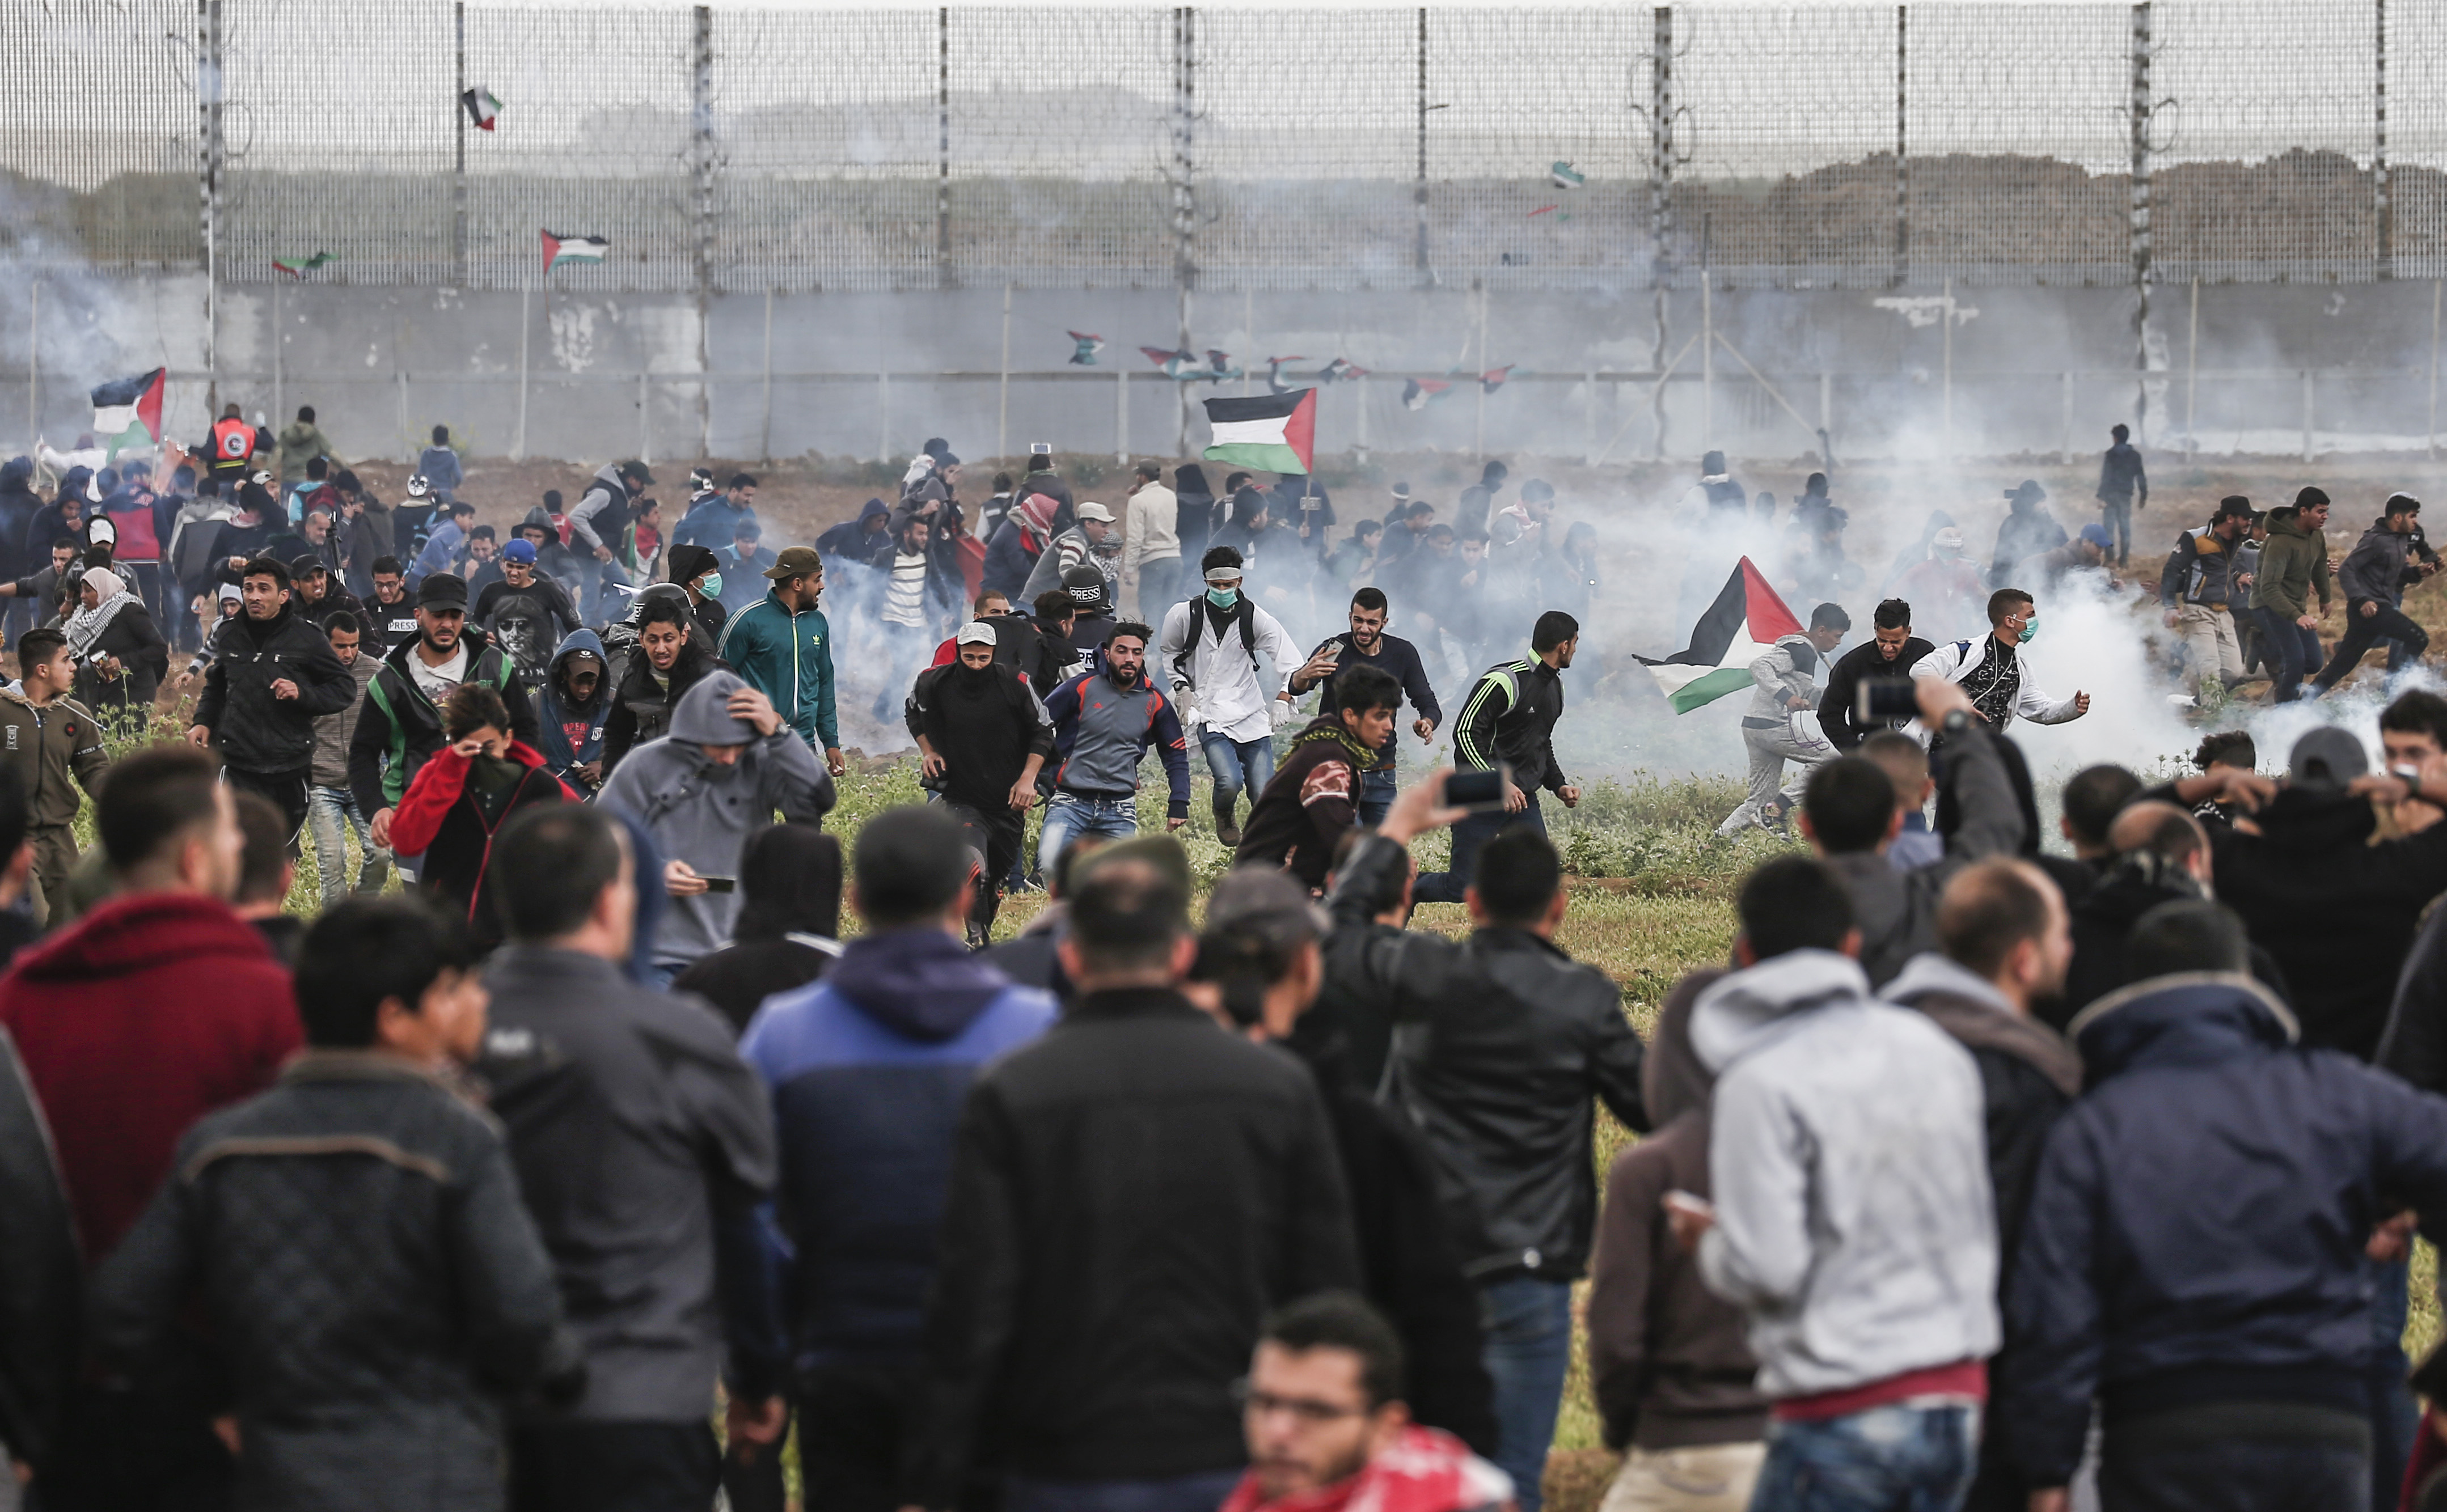 Protesters flee from tear gas fumes near the border with Israel in Malaka, east of Gaza City.